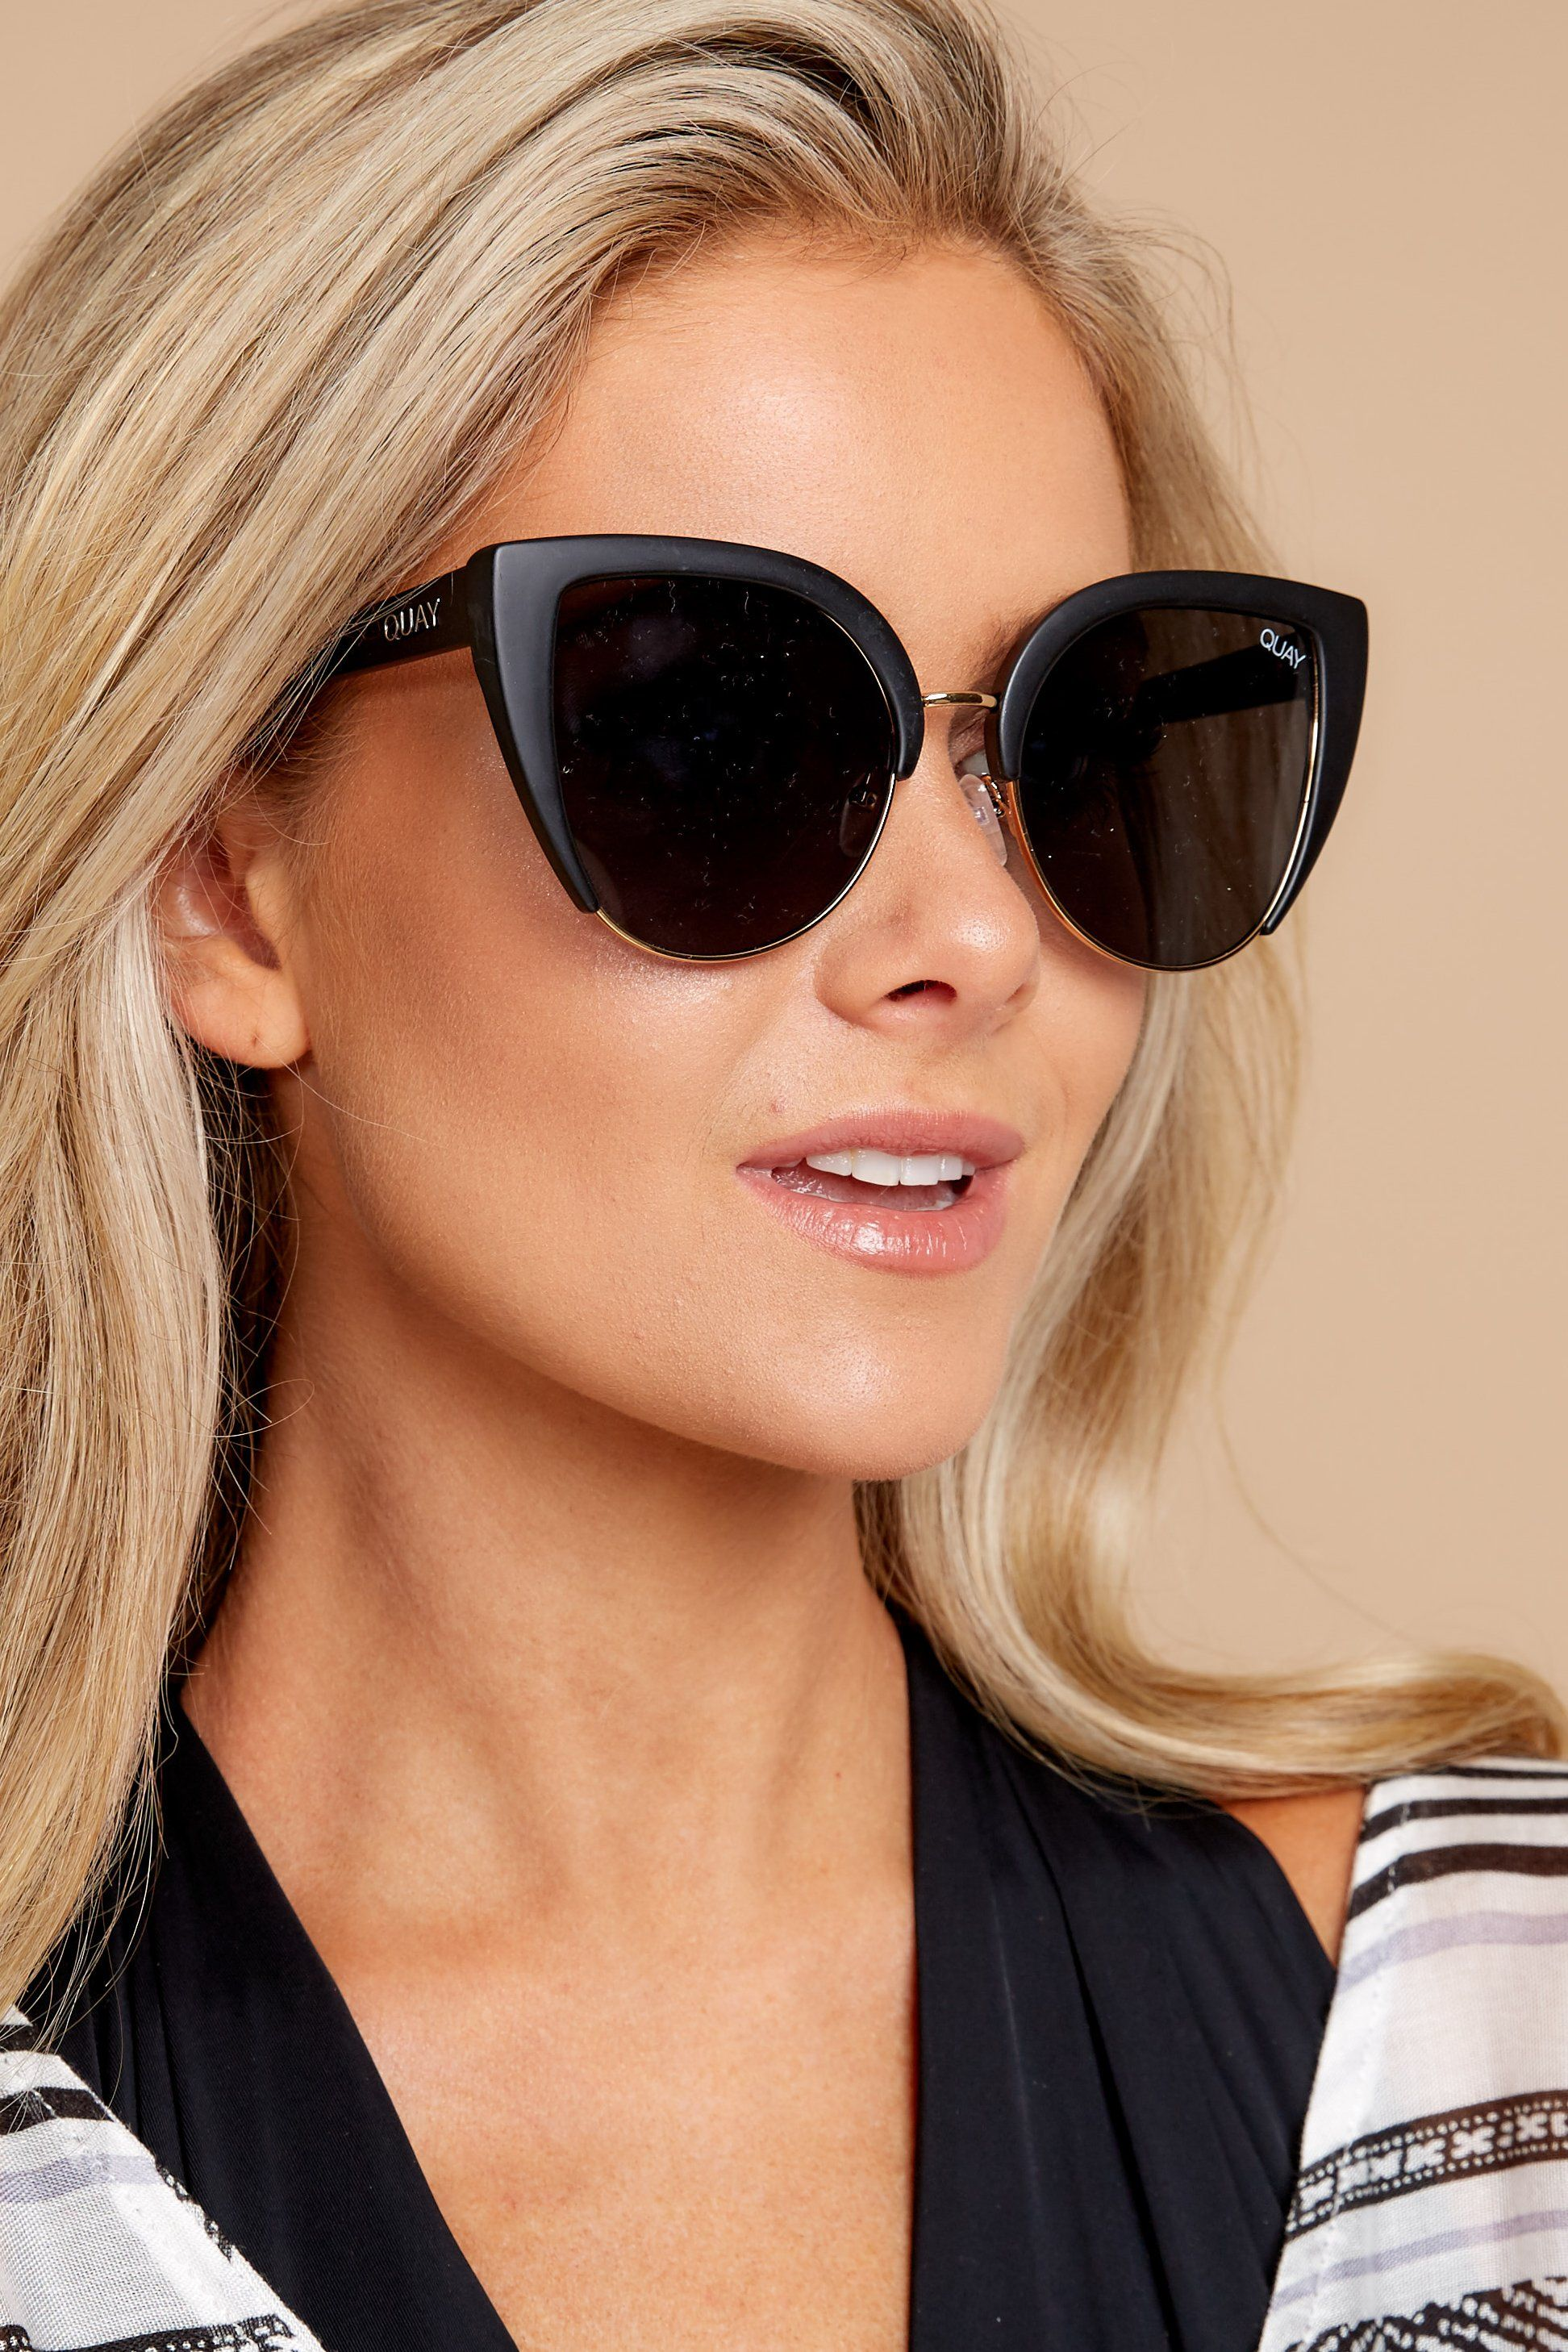 4f070857e1 Quay Australia Oh My Dayz Black Sunglasses - Trendy Sunglasses - Sunglasses  -  60.00 – Red Dress Boutique